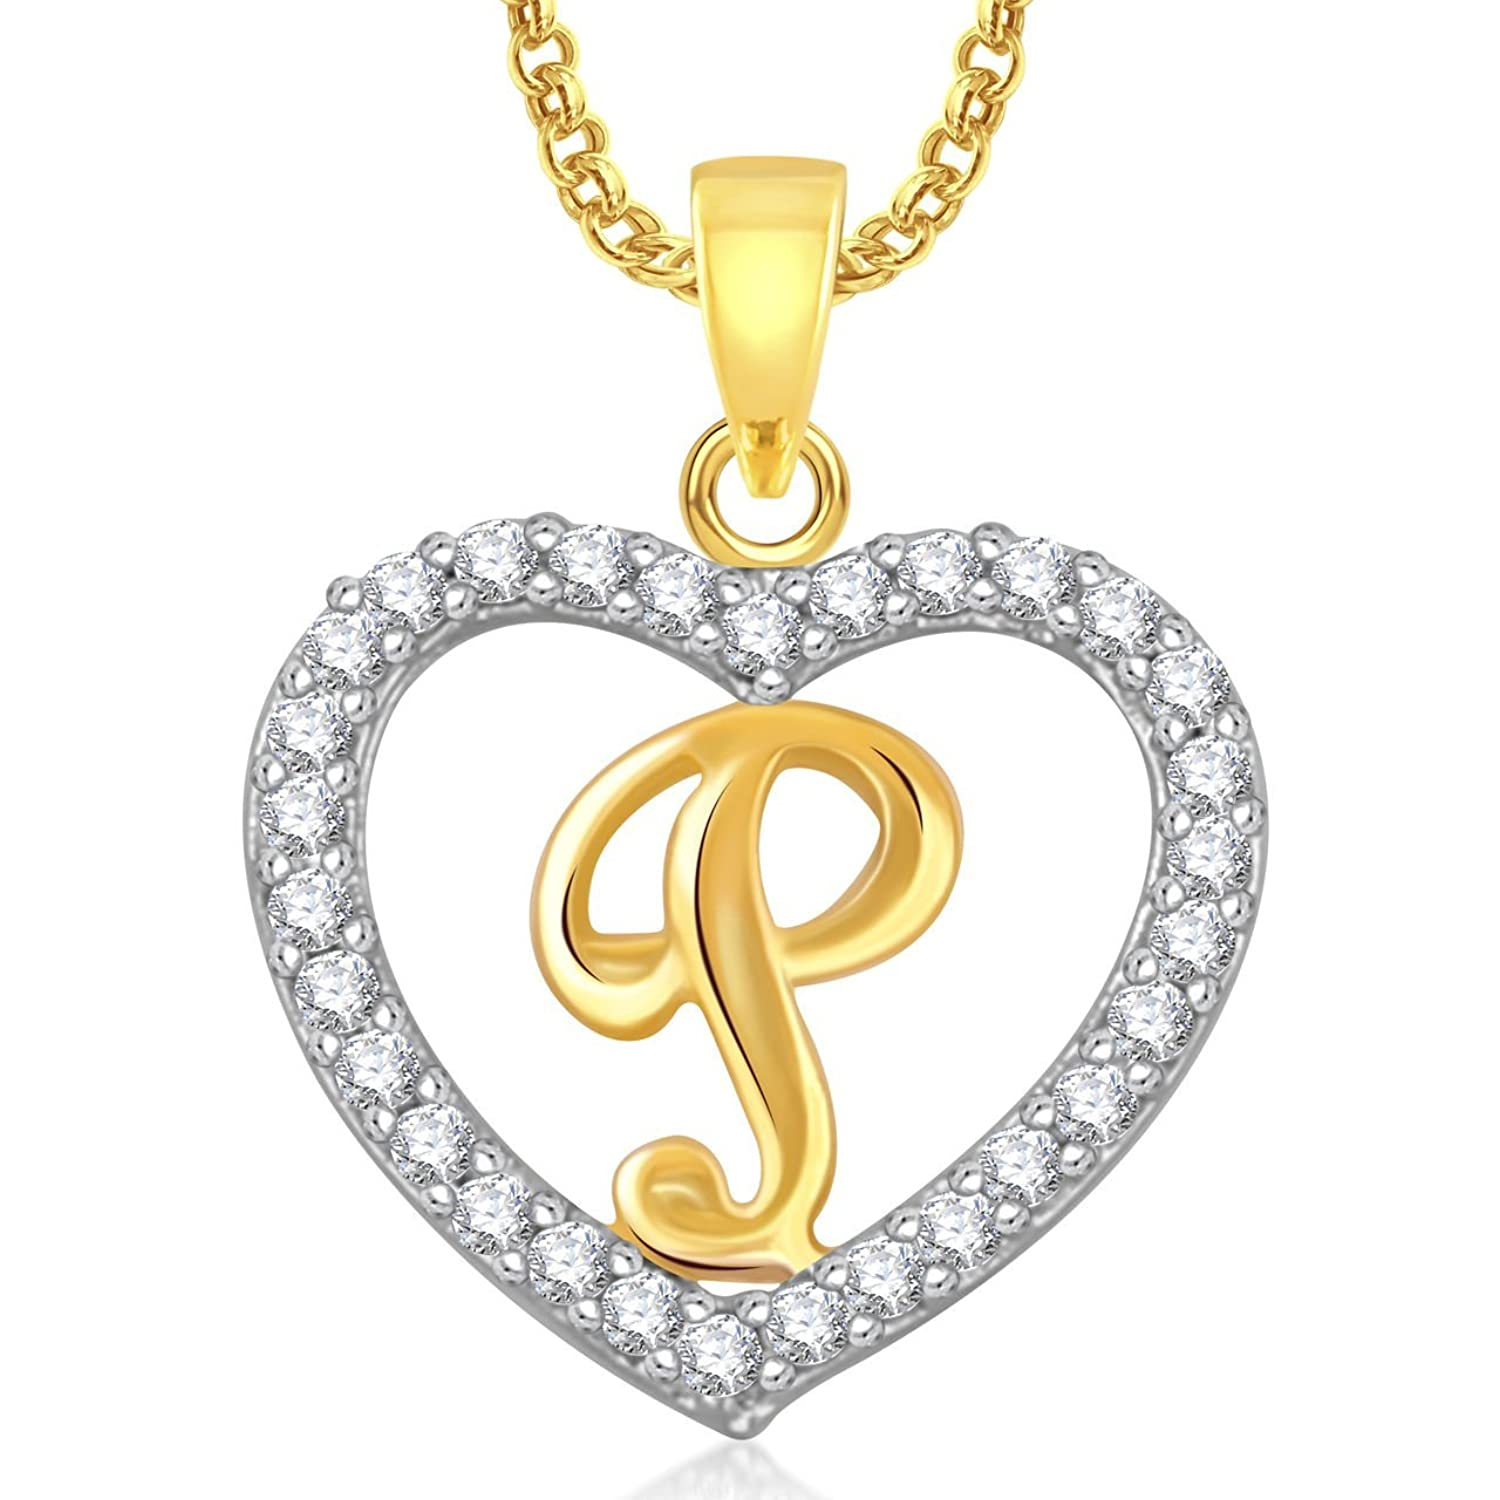 Buy Valentine Gifts Amaal Heart U0027Pu0027 Alphabet Pendant For Girls U0026 Women With  Chain PS0408 Online At Low Prices In India | Amazon Jewellery Store    Amazon.in  P & L Statement